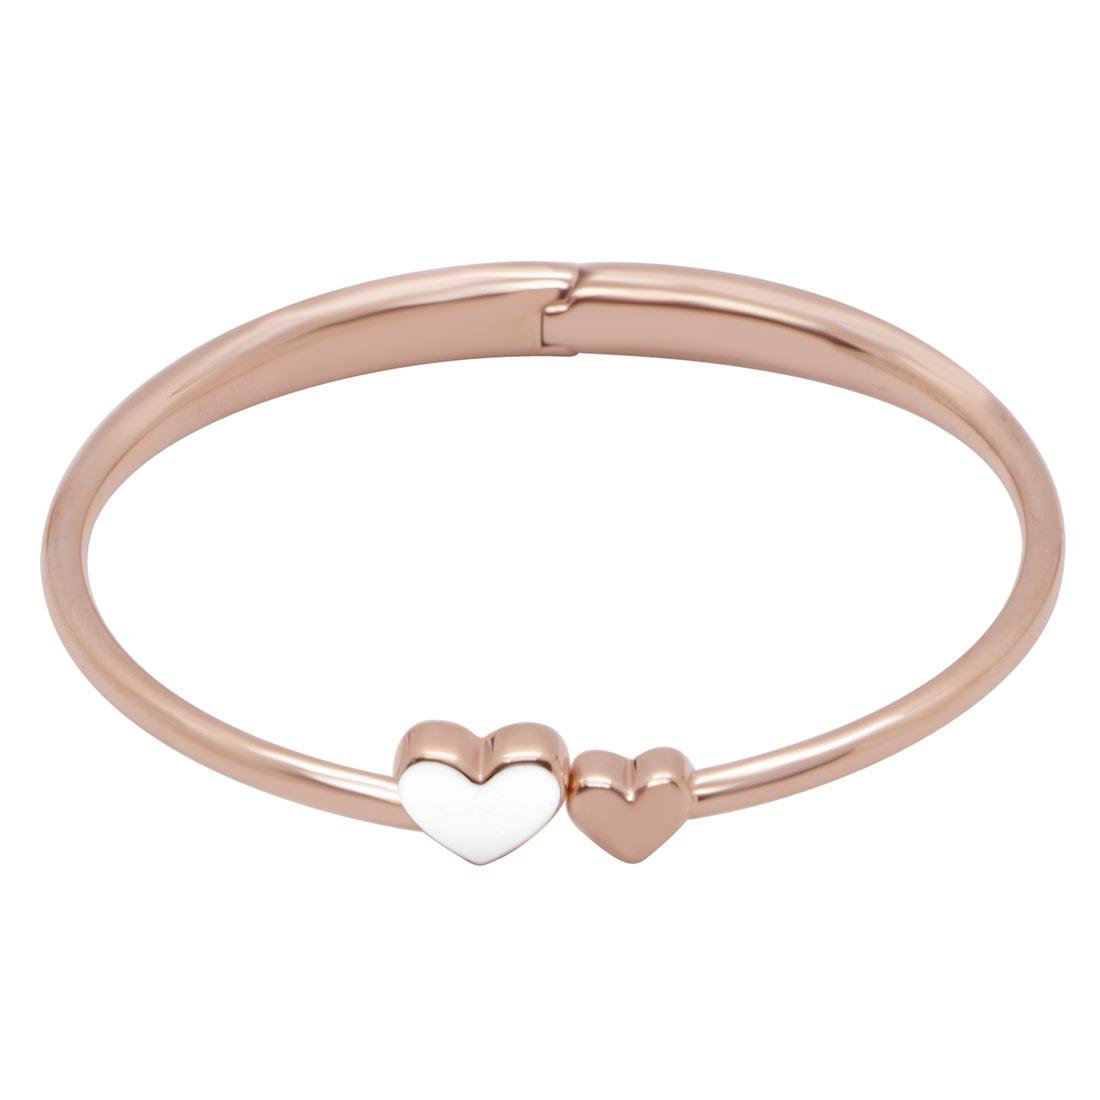 Bracciale Tommy Hilfiger Kissing Heart in acciaio rosato - TOMMY HILFIGER